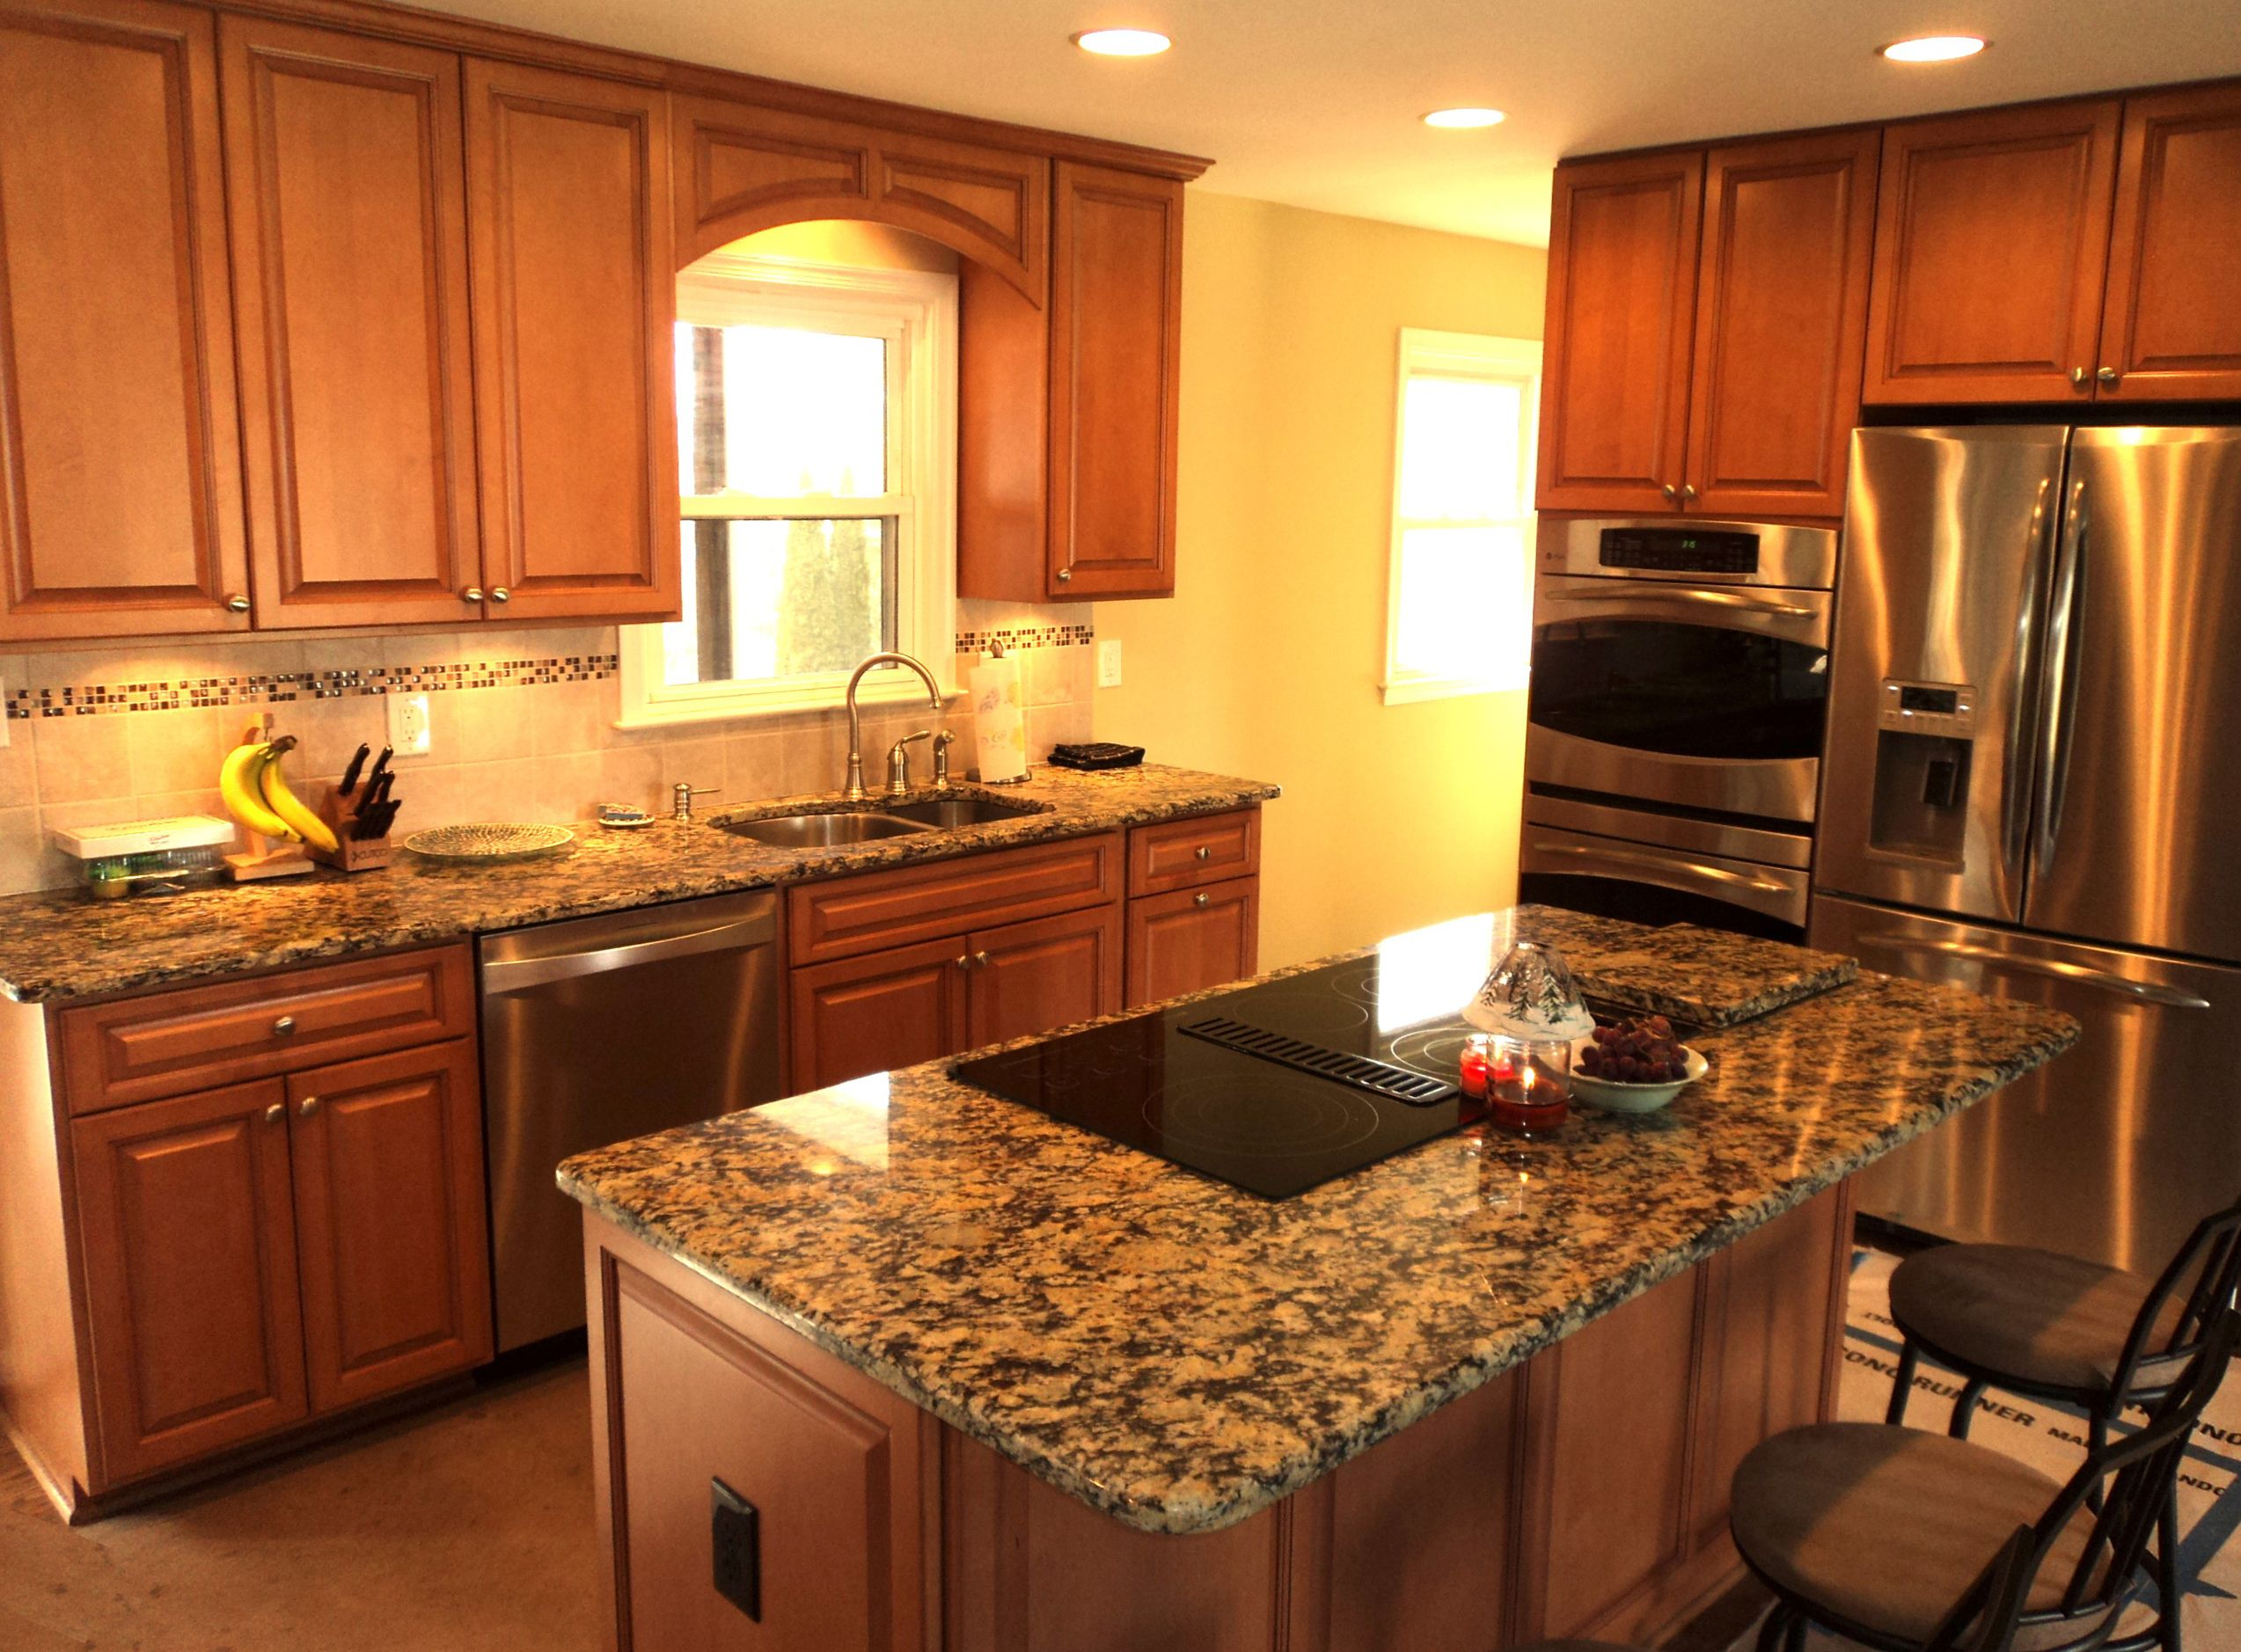 kitchen remodeling project in bel air md design build